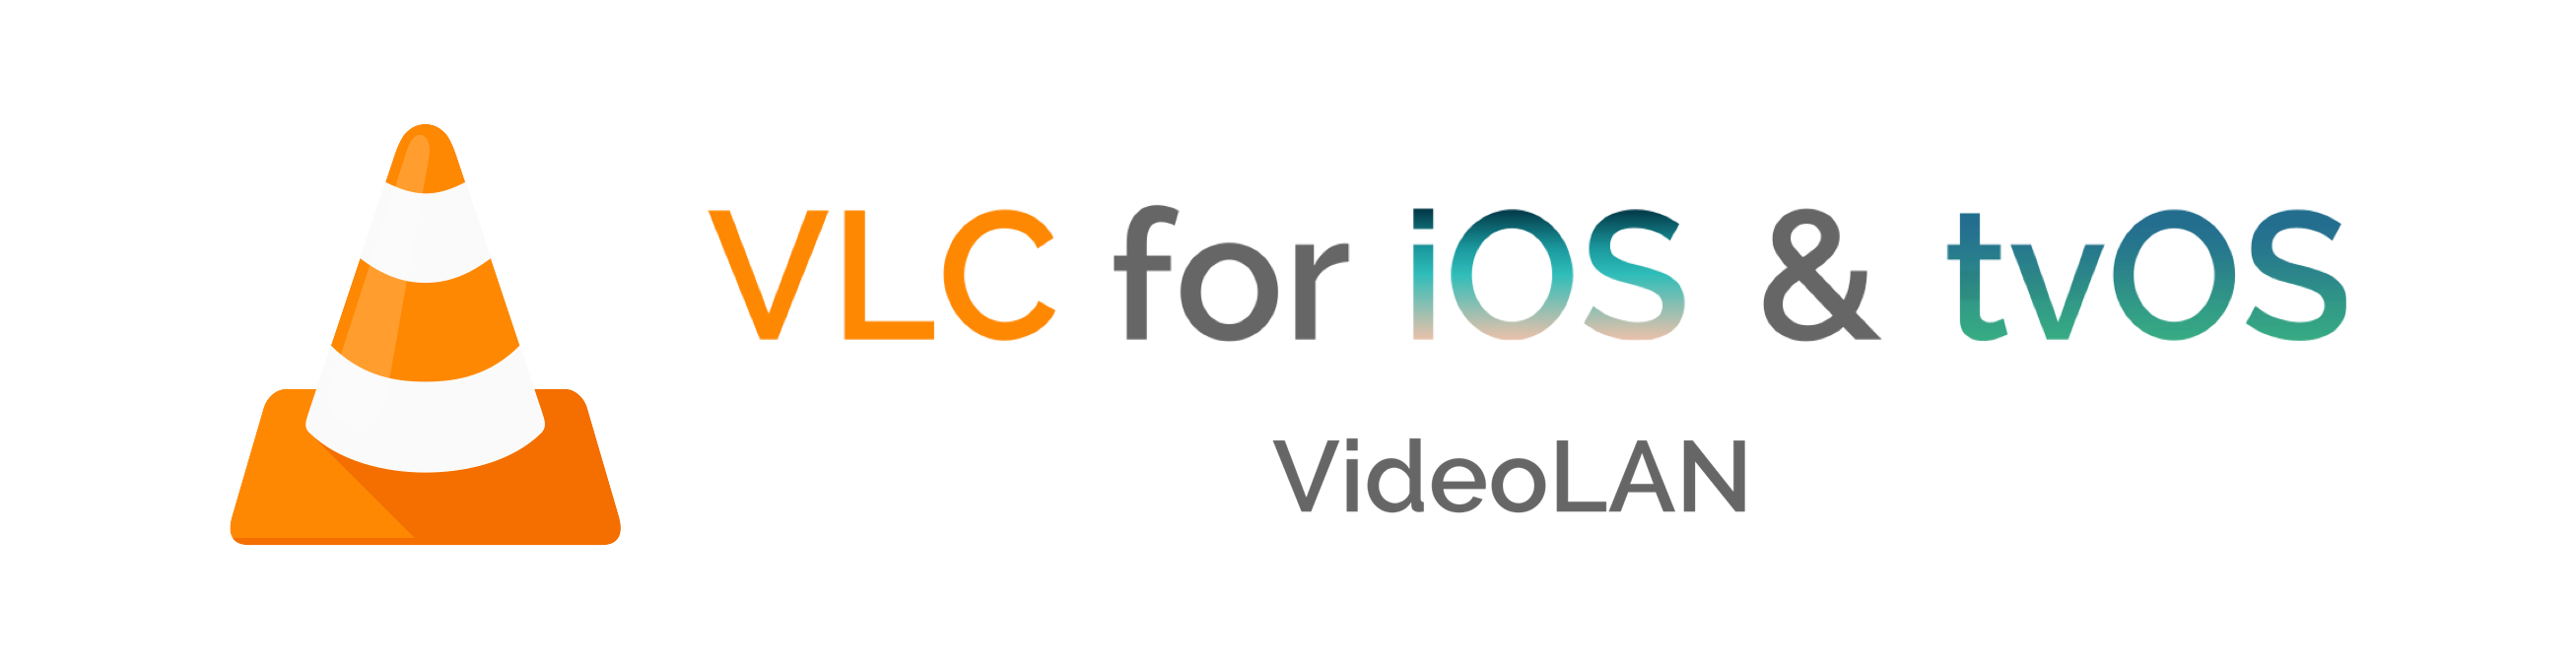 www.videolan.org/images/vlc-ios/readme_banner.png